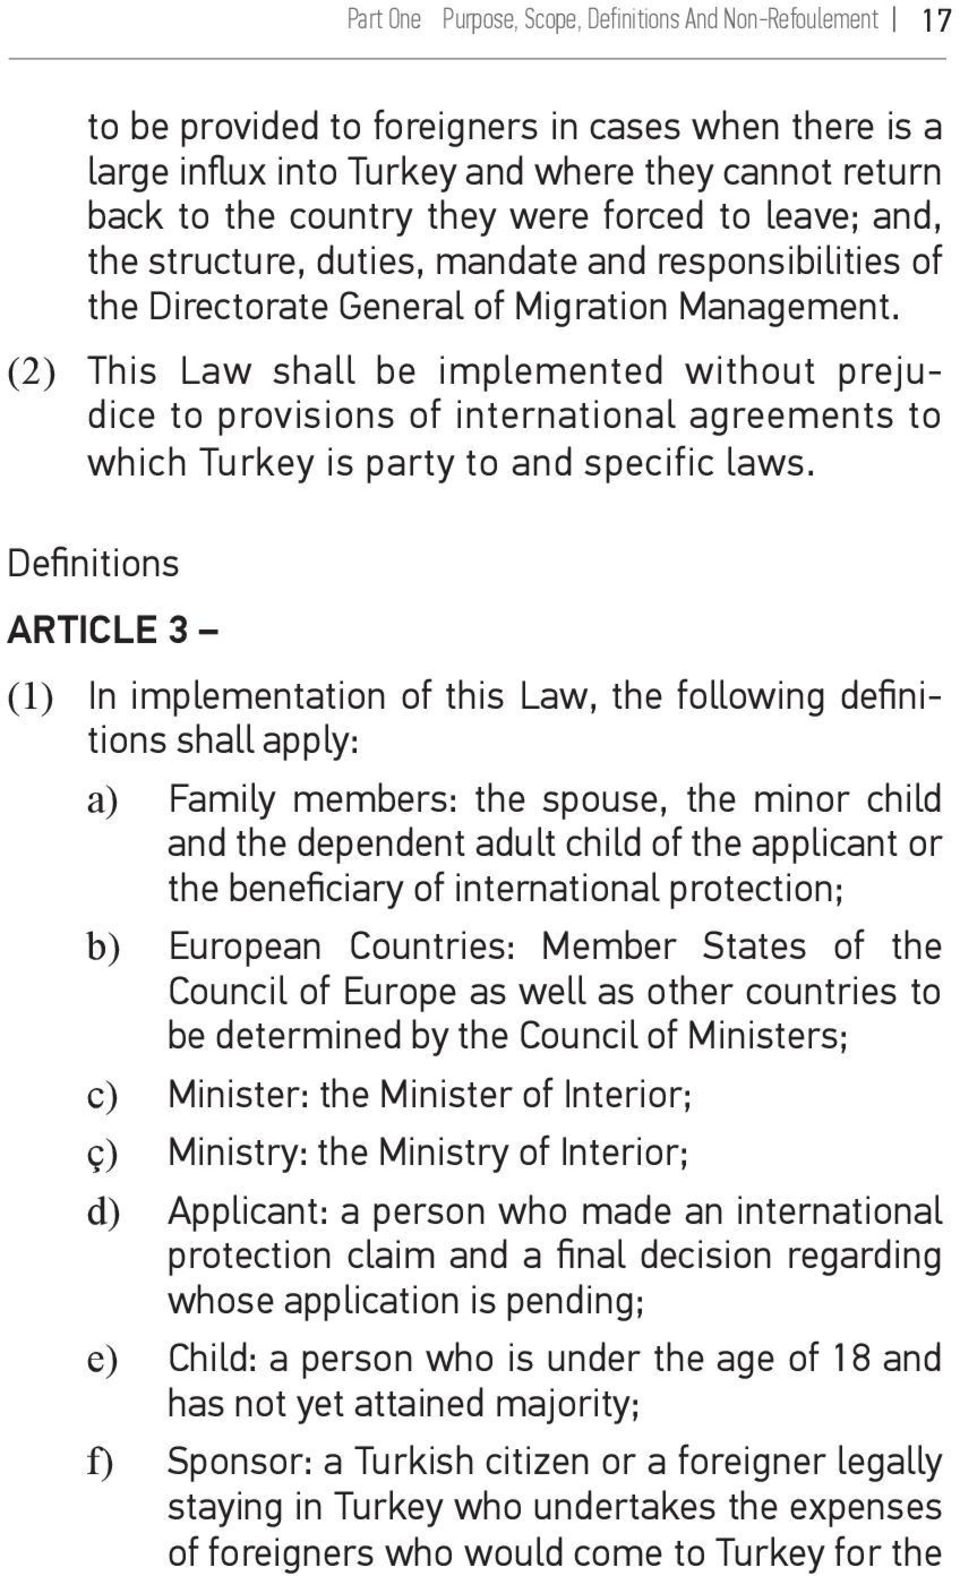 (2) This Law shall be implemented without prejudice to provisions of international agreements to which Turkey is party to and specific laws.